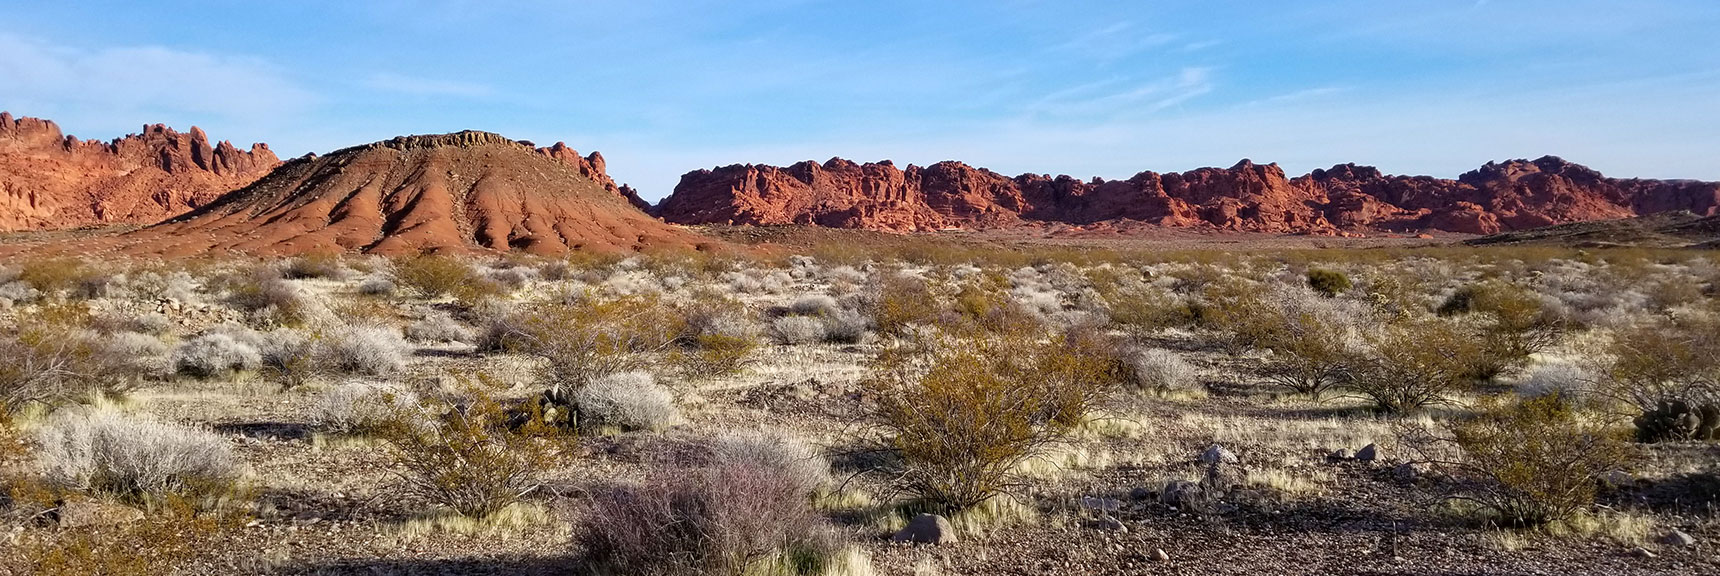 View Northeast Along Red Rock Hills from Old Arrowhead Trail in Valley of Fire State Park, Nevada